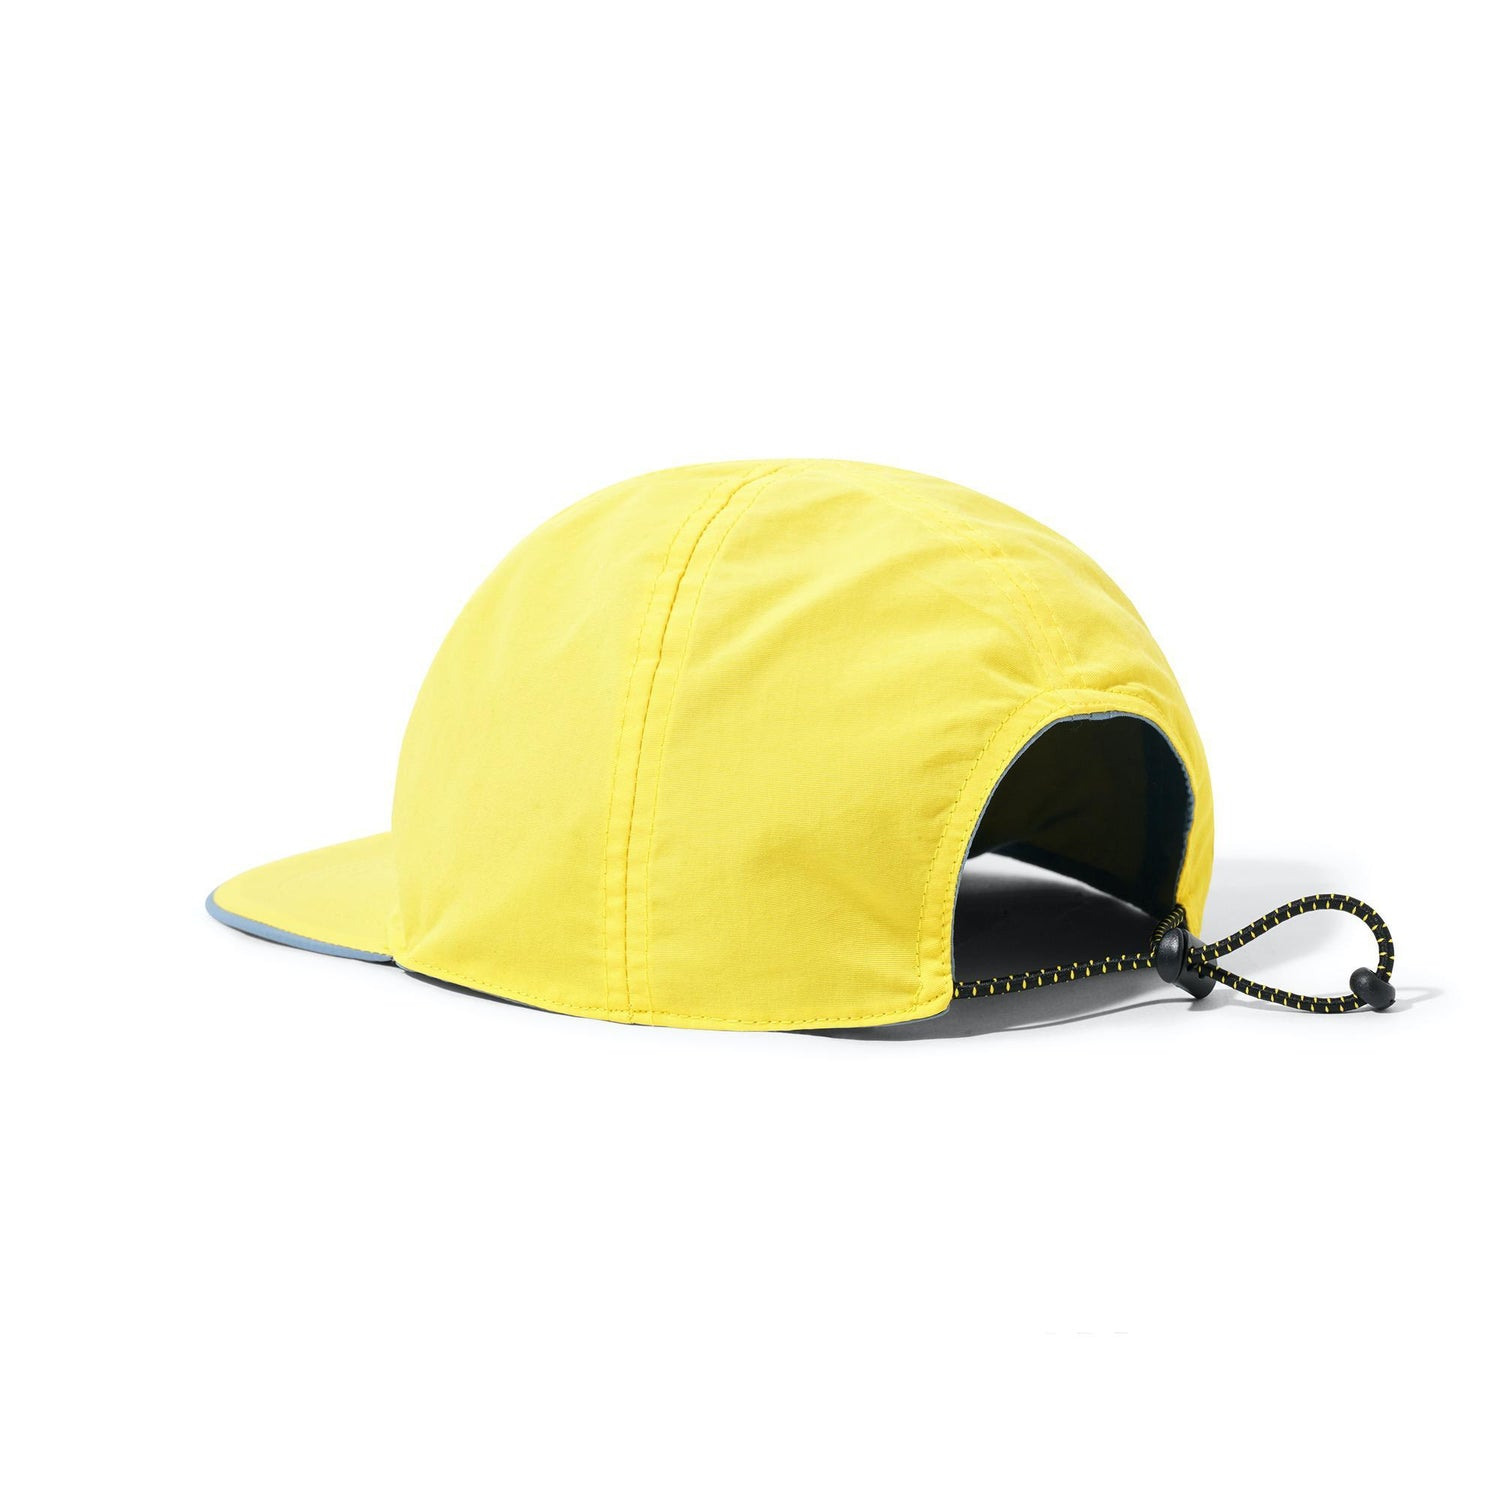 Reversible 6 Panel, Stone / Daffodil